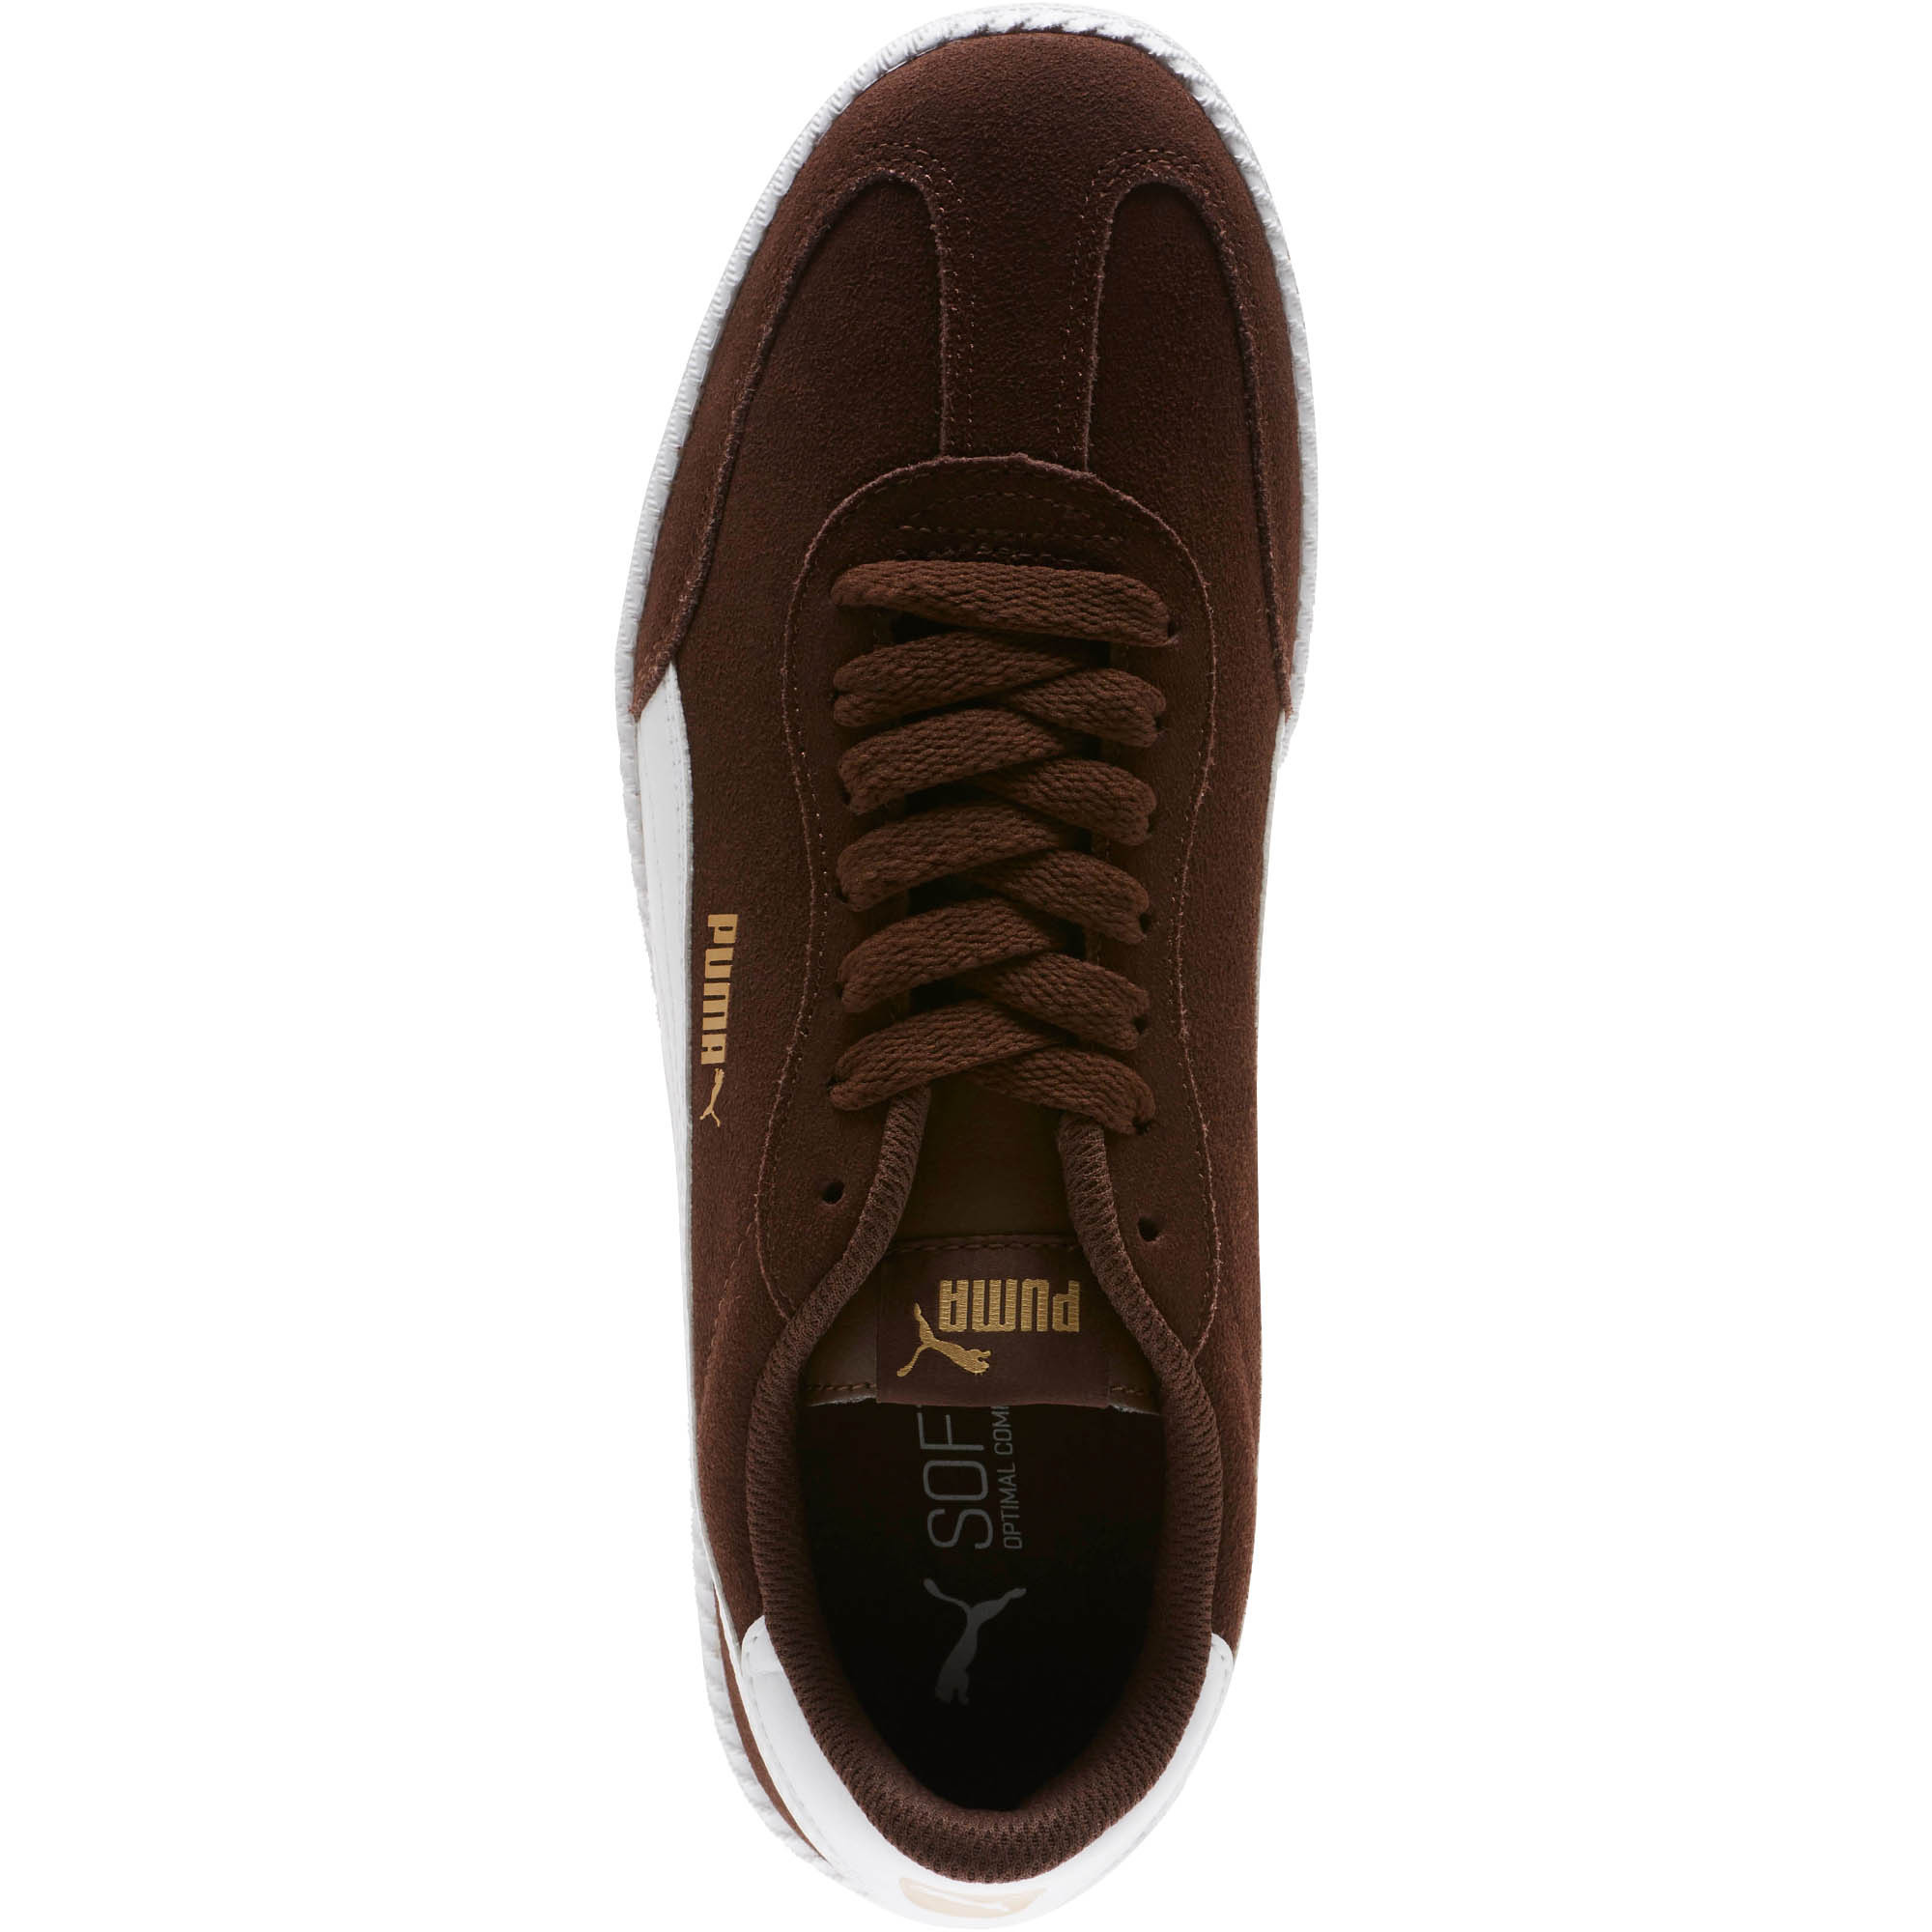 PUMA-Astro-Cup-Suede-Sneakers-Men-Shoe-Basics thumbnail 31